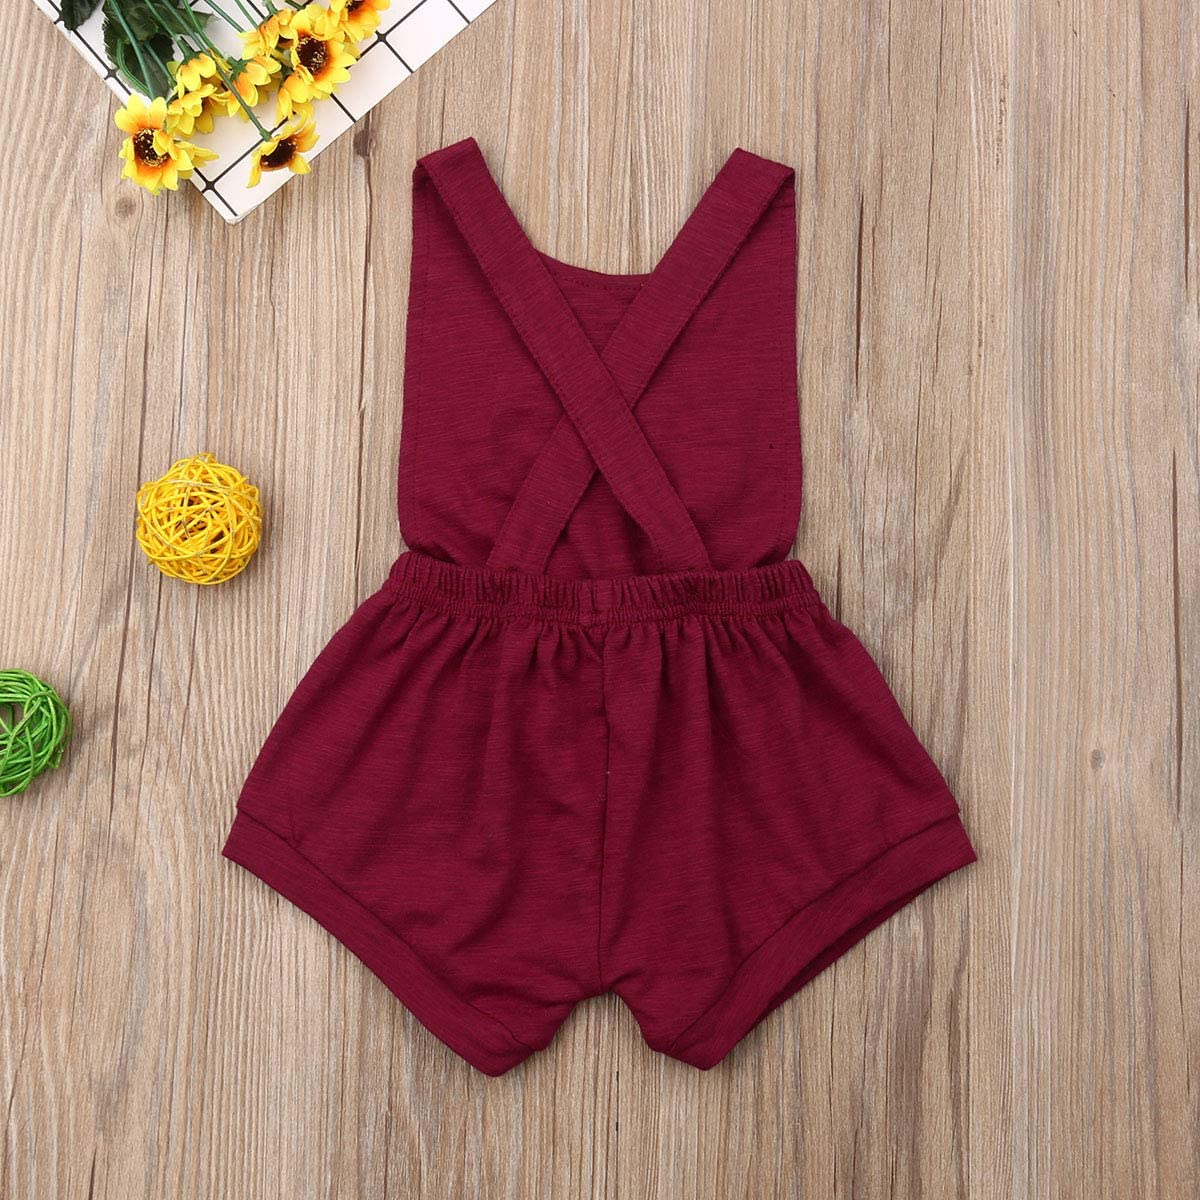 xueliangdedianpu Unisex Baby Summer Overalls Solid Color Soft Cotton One-Piece Rompers Suspenders for Newborn Infant Toddler